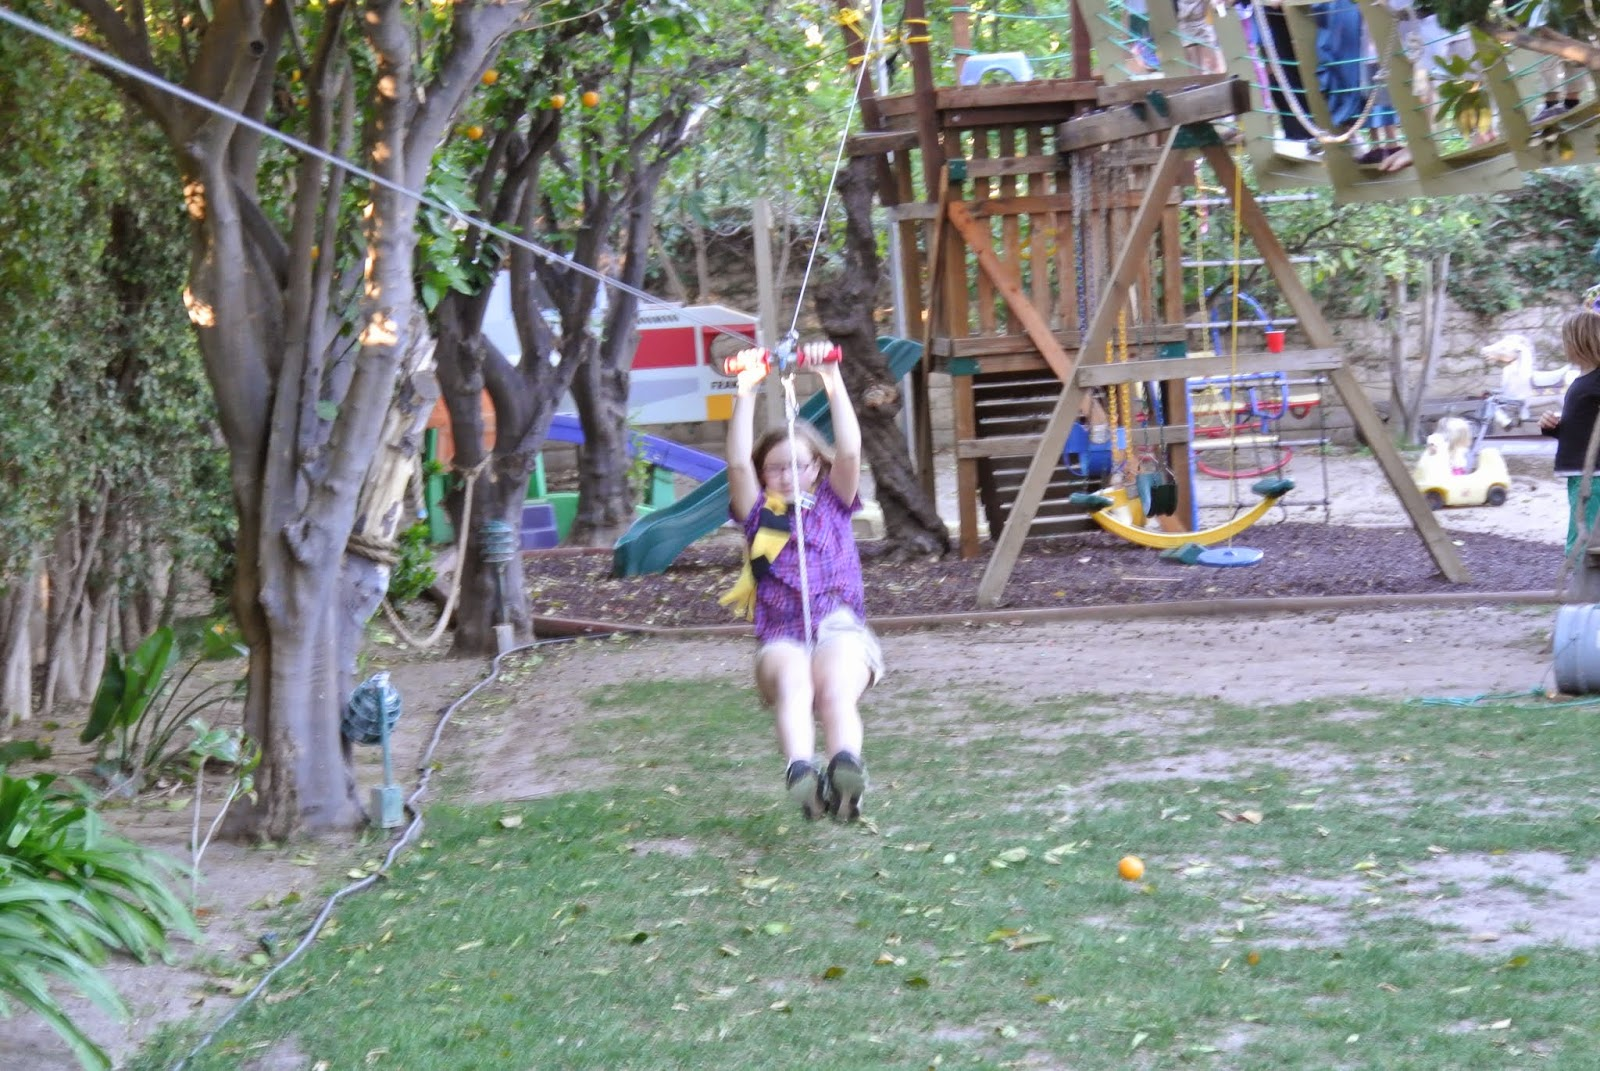 Jack And Grandad Just Happened To Design Install A Zipline In The Backyard At Christmas So Kids Got Ride Their Brooms Down Get